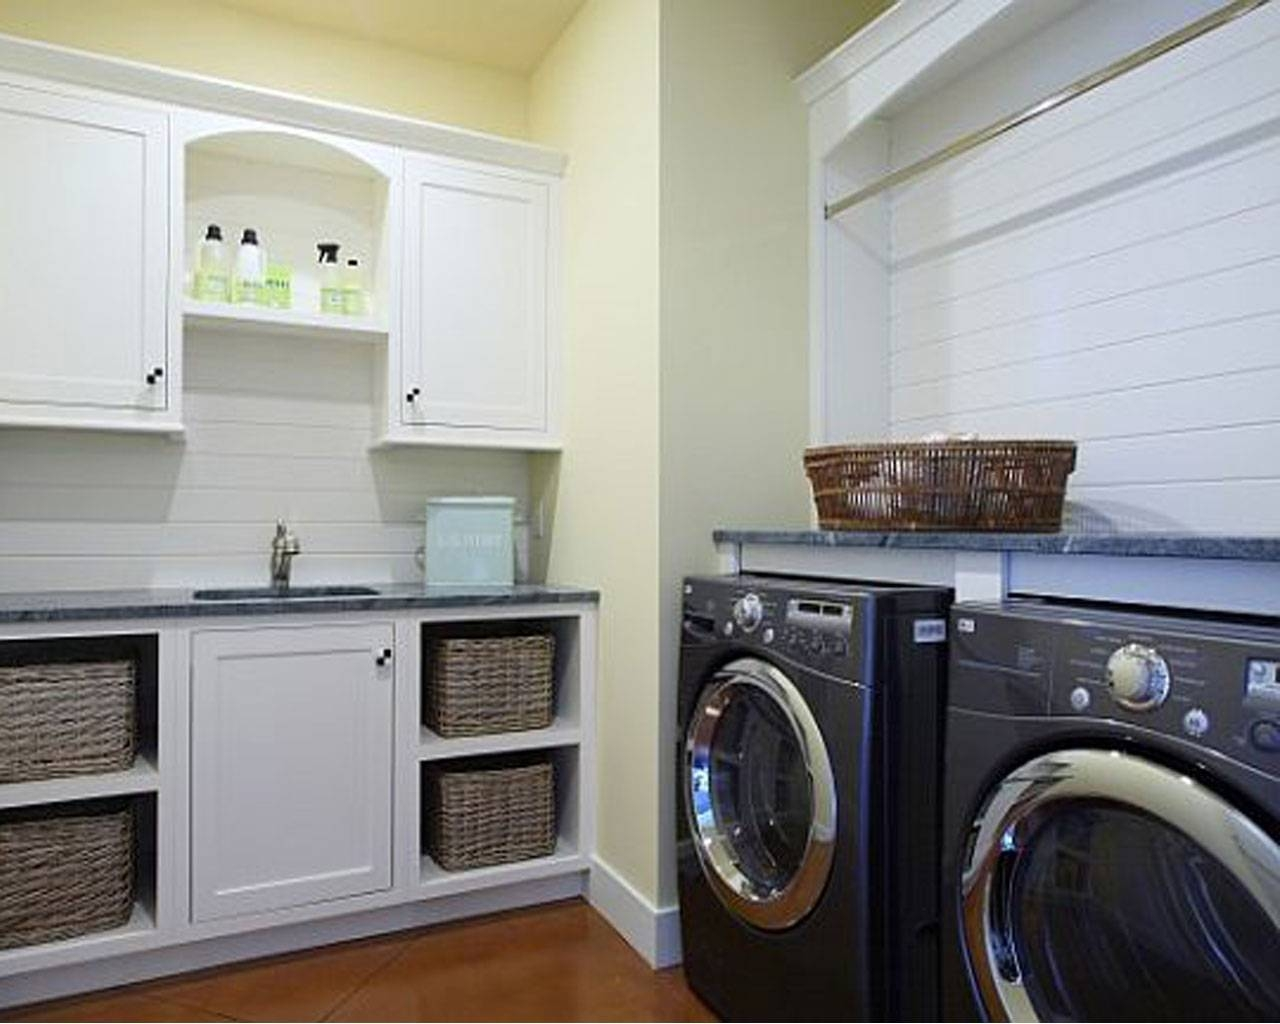 Decorating Laundry Room : The Ideas Of Sleek Laundry Room Decor Within Most Current Laundry Room Wall Art Decors (View 11 of 25)